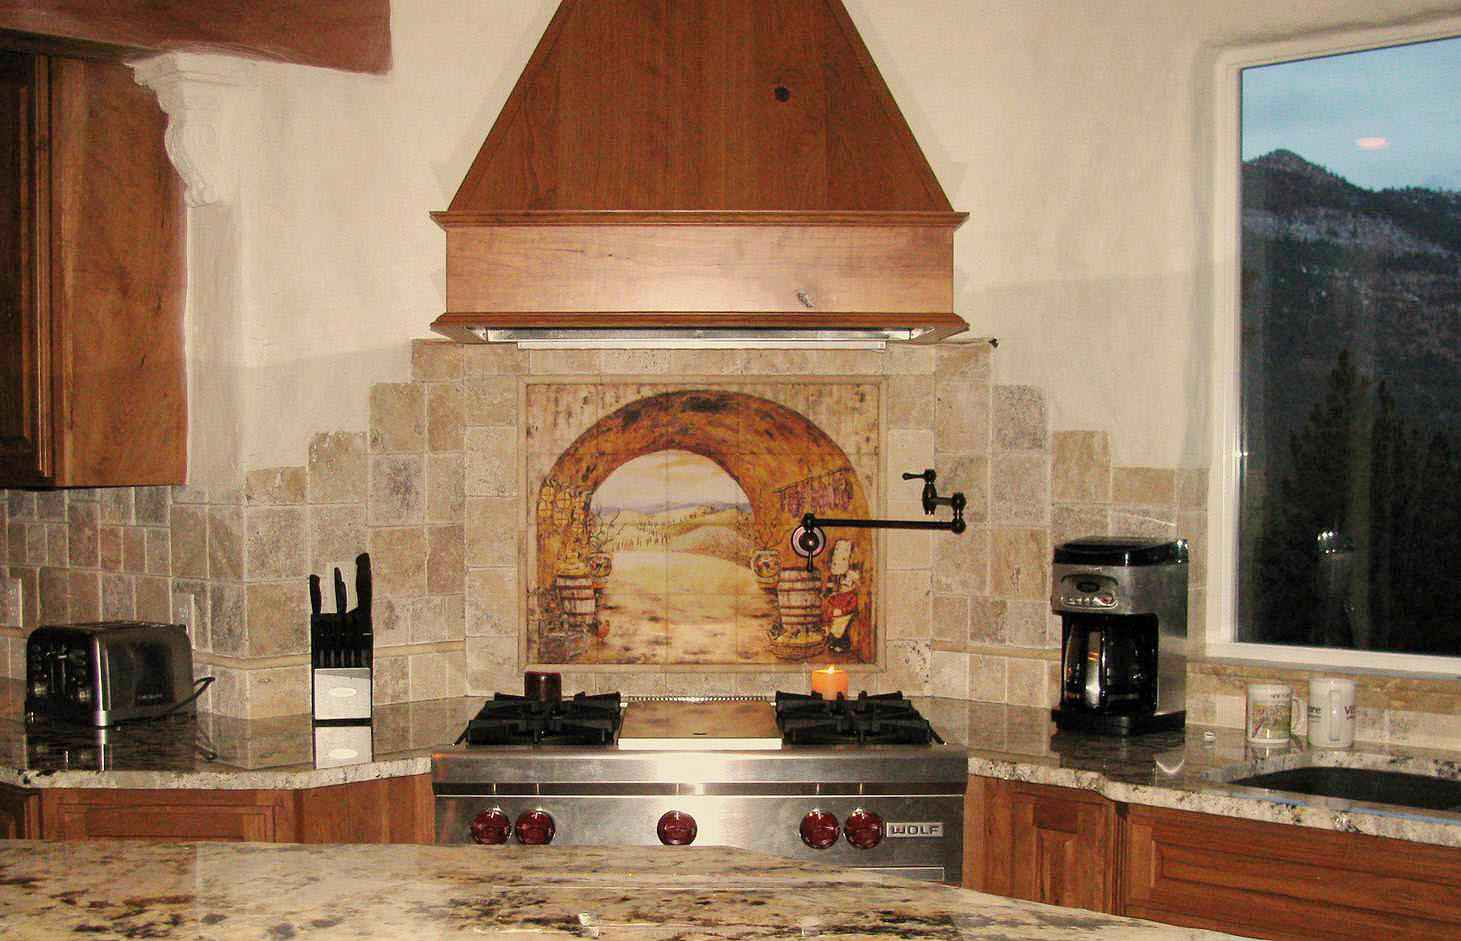 Backsplash design ideas for your kitchen Italian marble backsplash